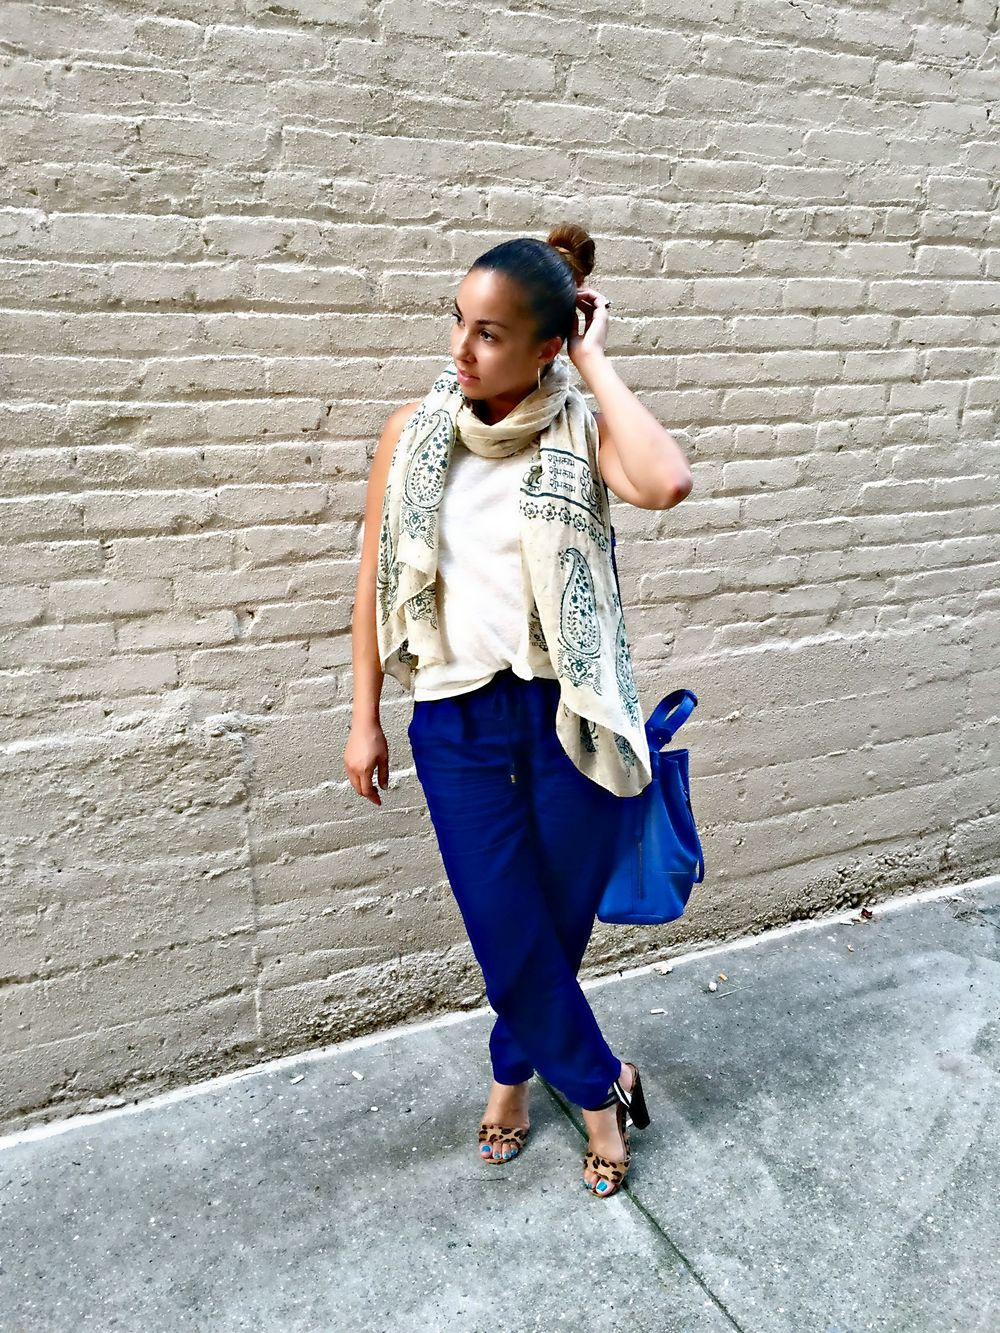 H&M Tank Top (last seen  here ) |  Zara Trousers  (identical  more colors)  |   Shoemint Heels  (last worn  here )  |  Shoedazzle Purse ( similar )  |  Scarf (gifted)